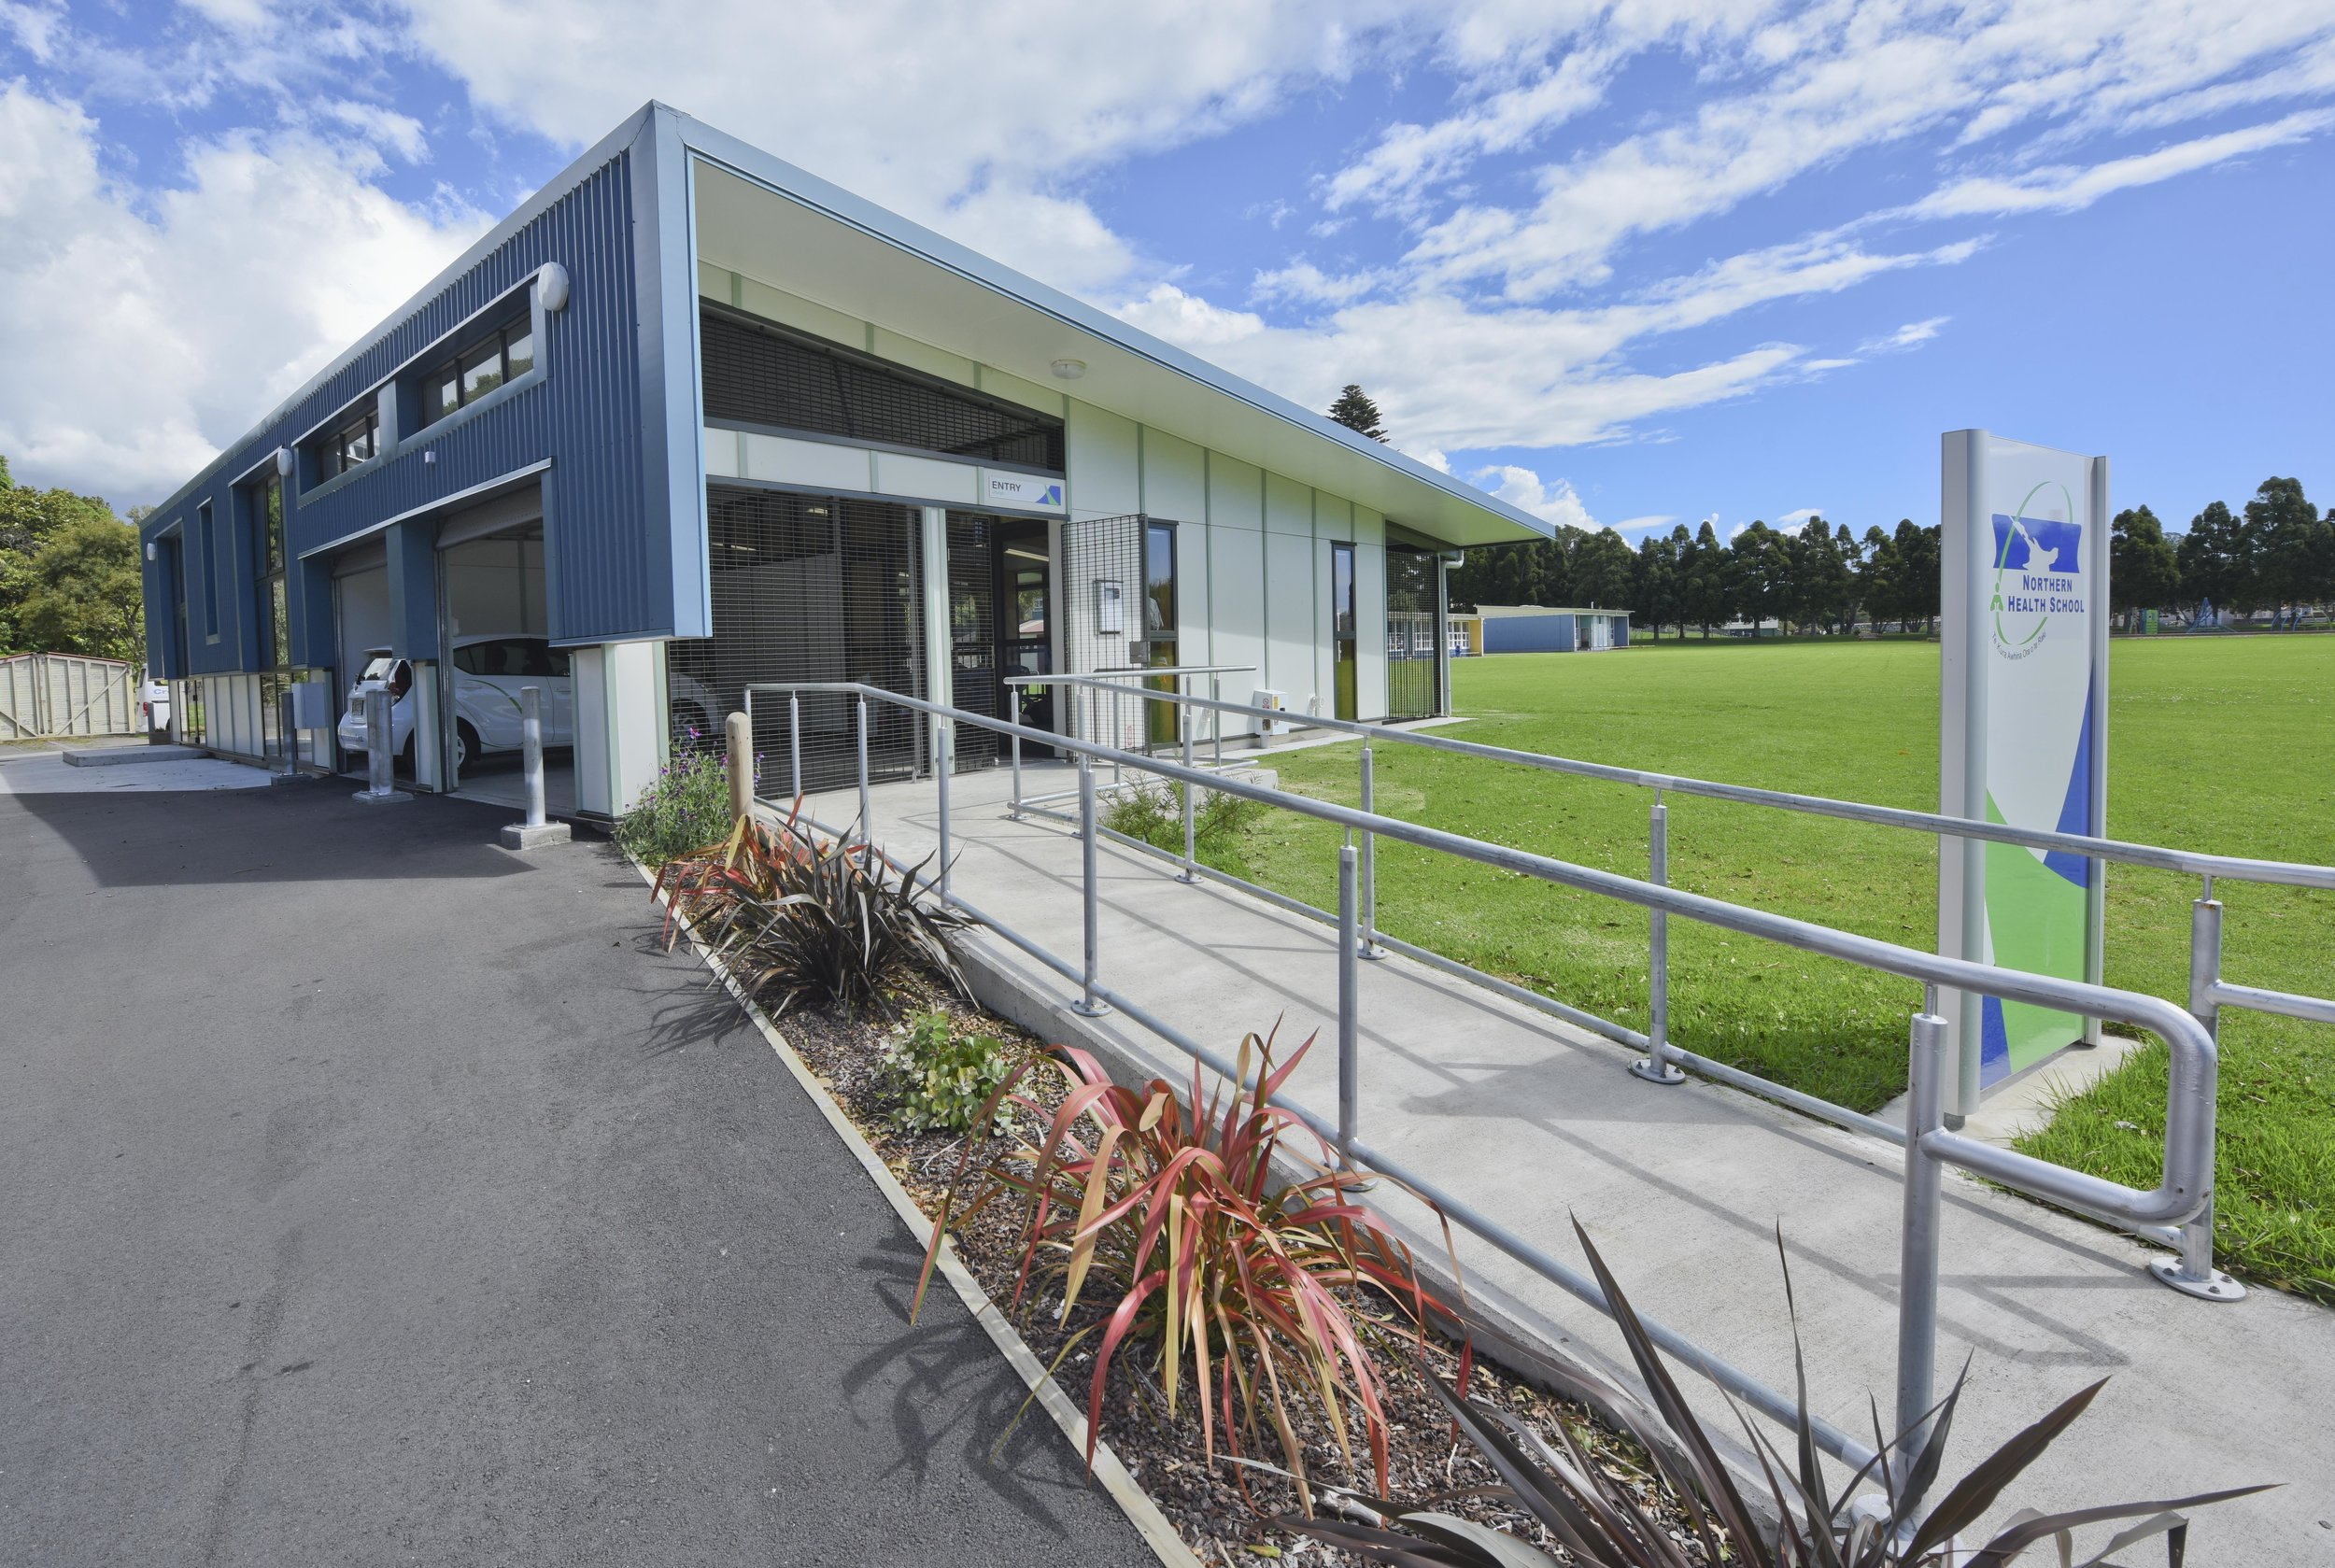 Northern Health School Devon Intermediate,  Taranaki   The Northern Health School,with units located throughout the North Island, provides community, in-home and hospital based teaching to students who are too unwell to attend regular school.